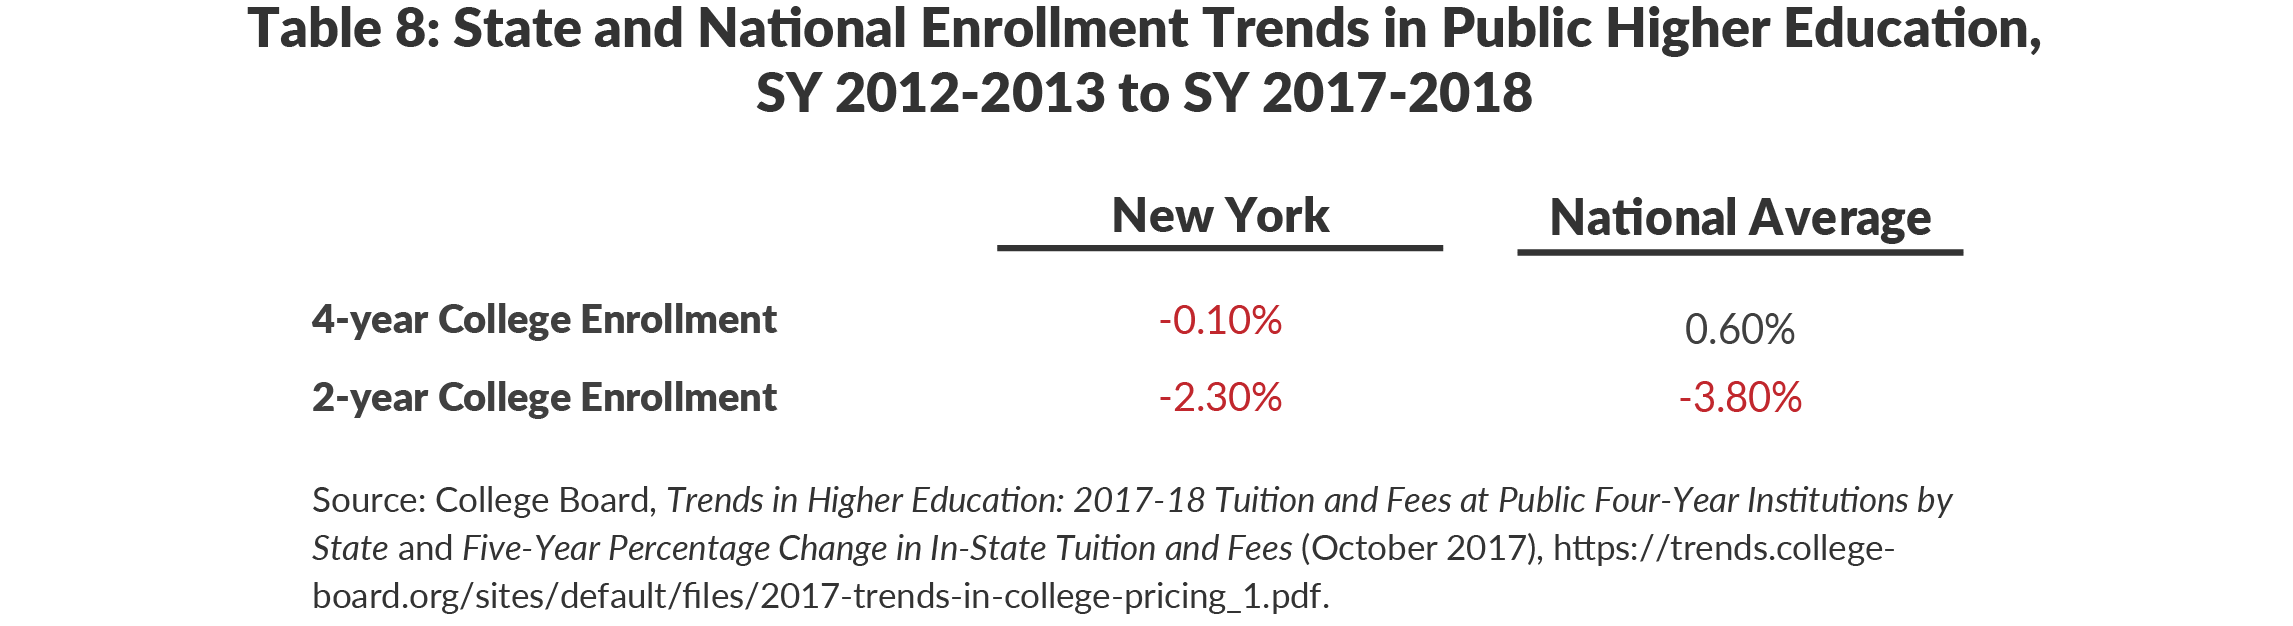 Table 8: State and National Enrollment Trends in Public Higher Education, SY 2012-2013 to SY 2017-2018